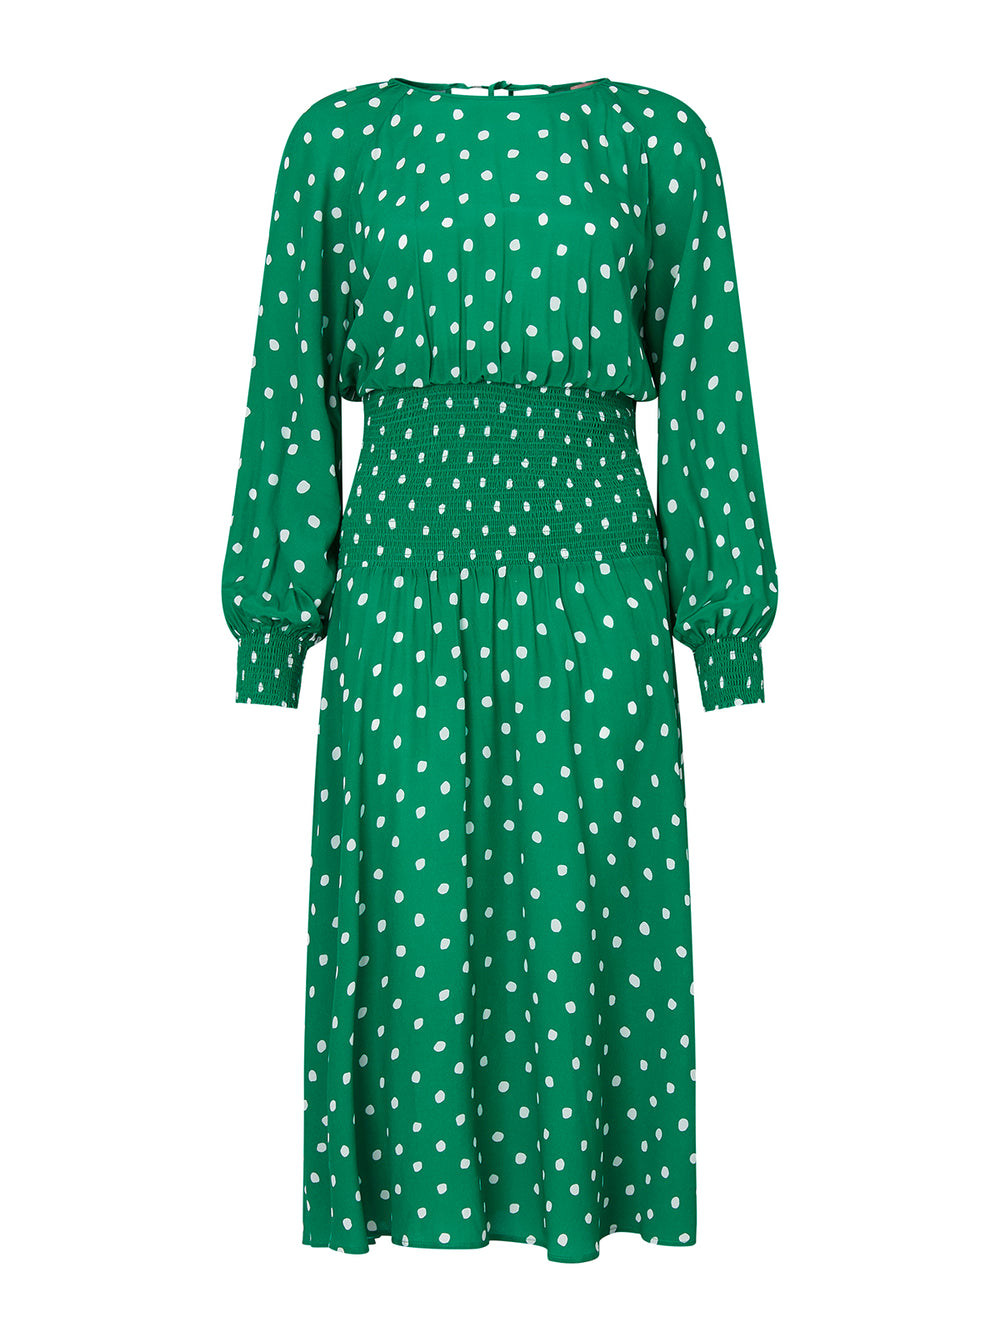 Marianella Green Polka Dot Smocked Dress by KITRI Studio